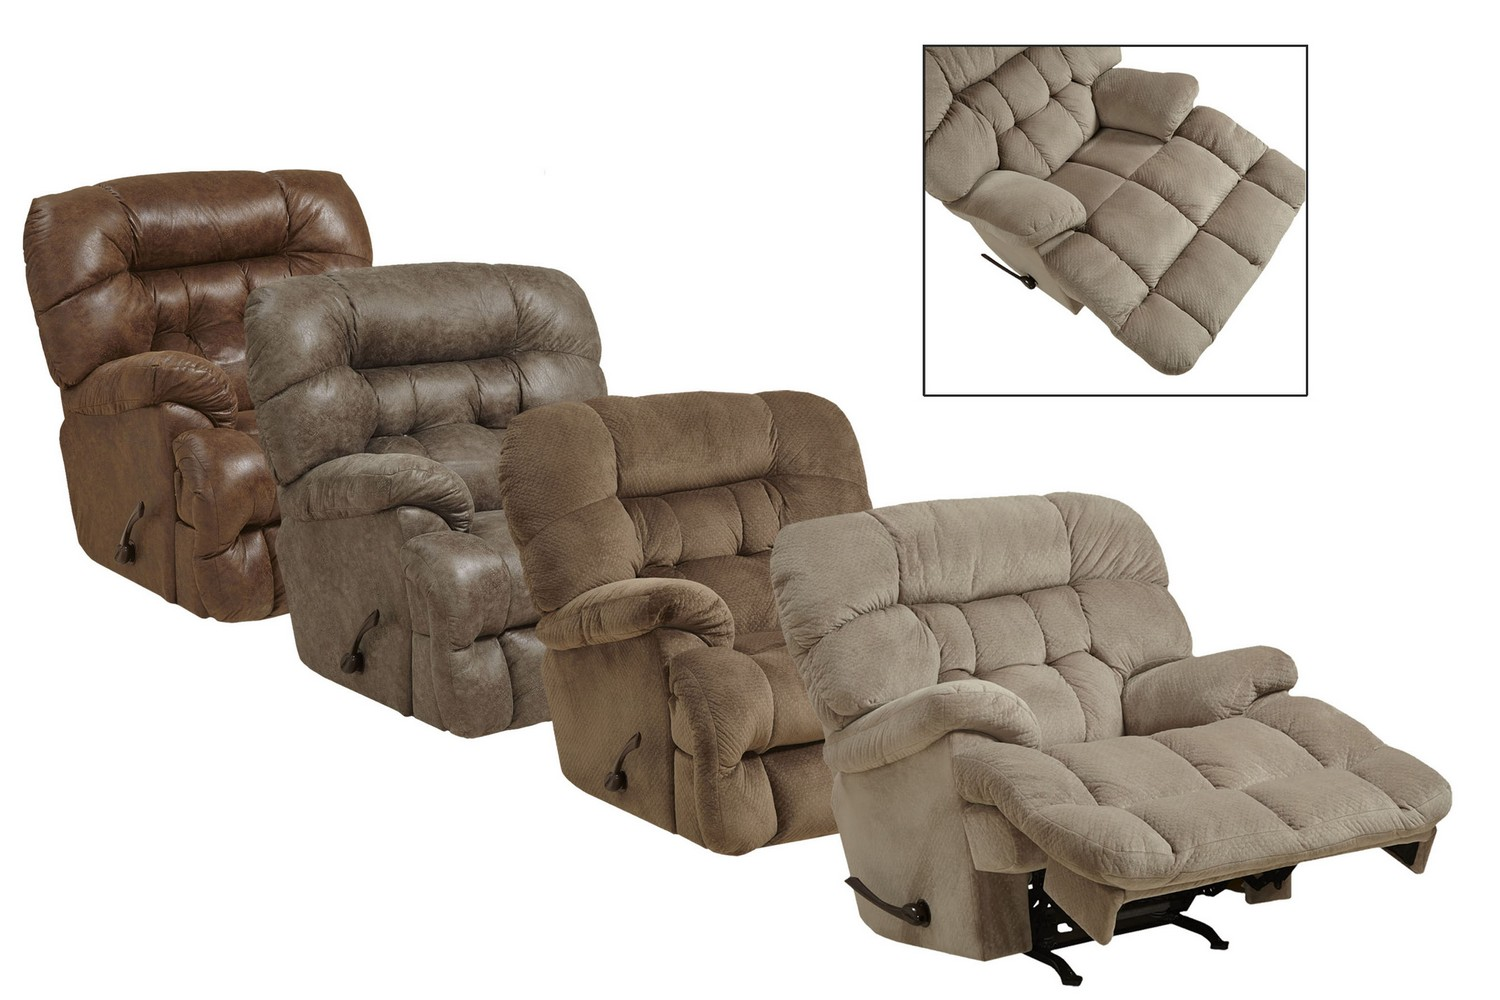 CatNapper Colson Chaise Rocker Reciner with Heat & Massage - Canyon